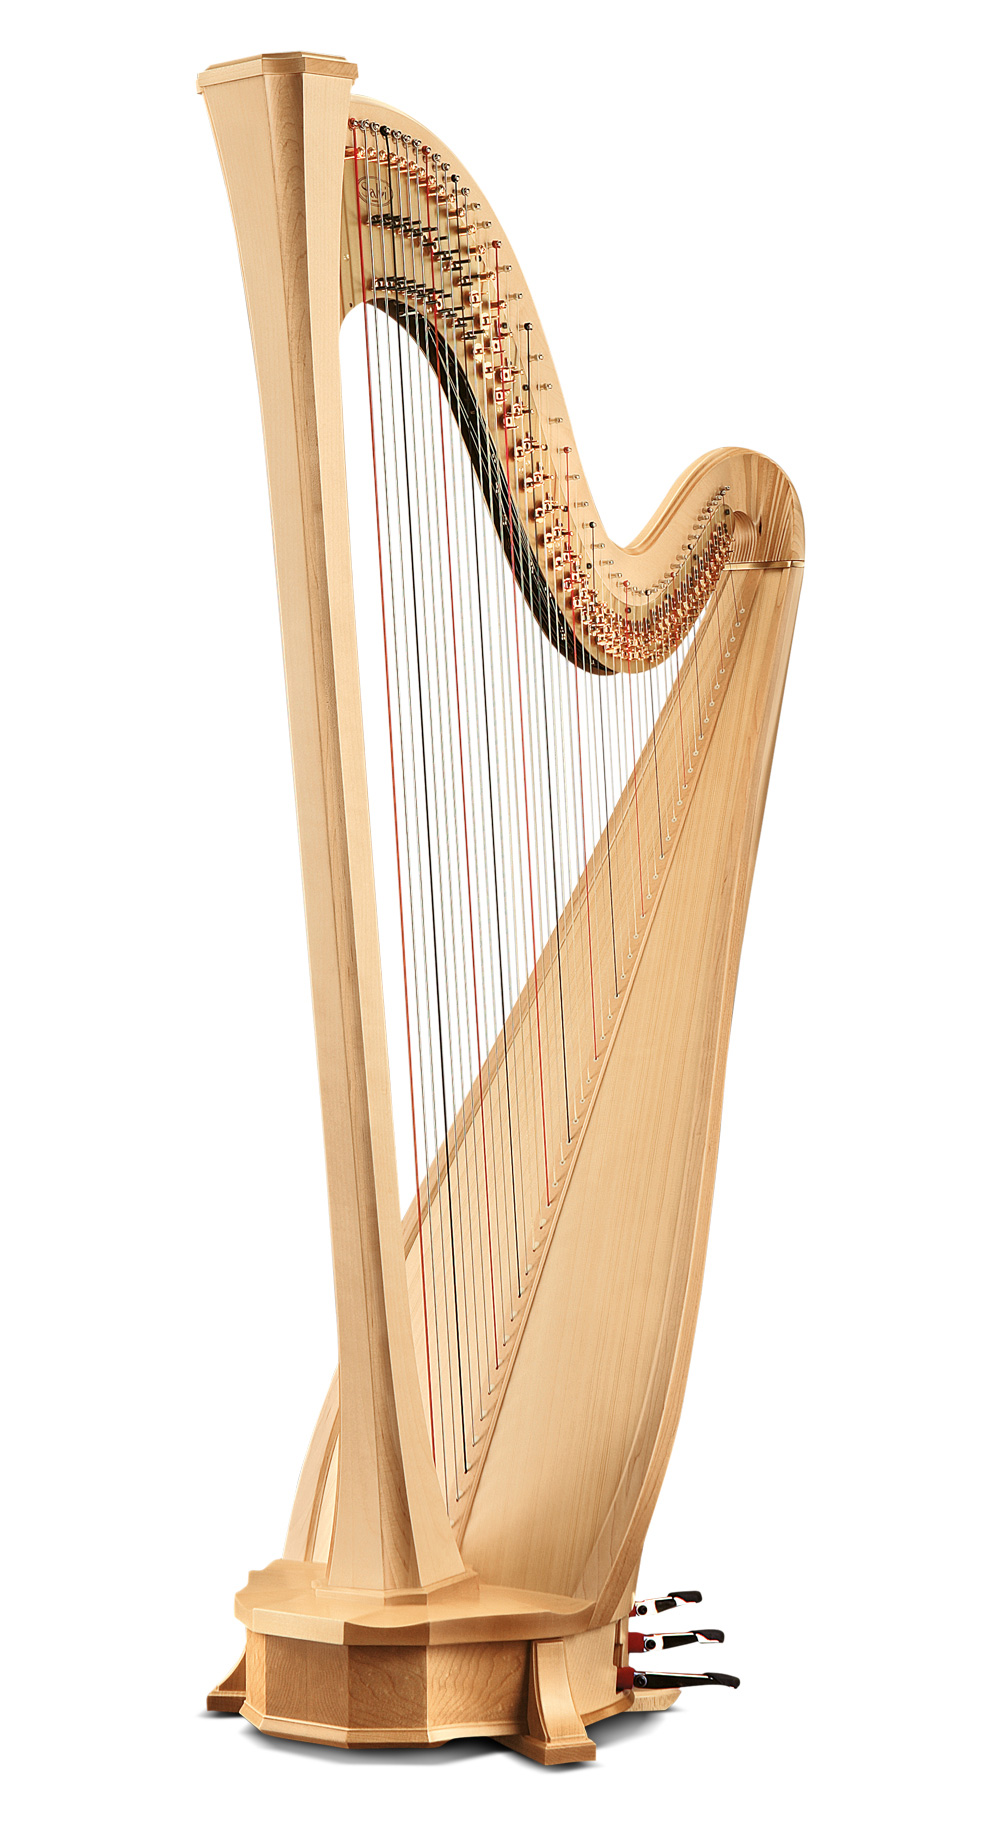 Arion Sg Arpa Professional Pedal Salvi Harps